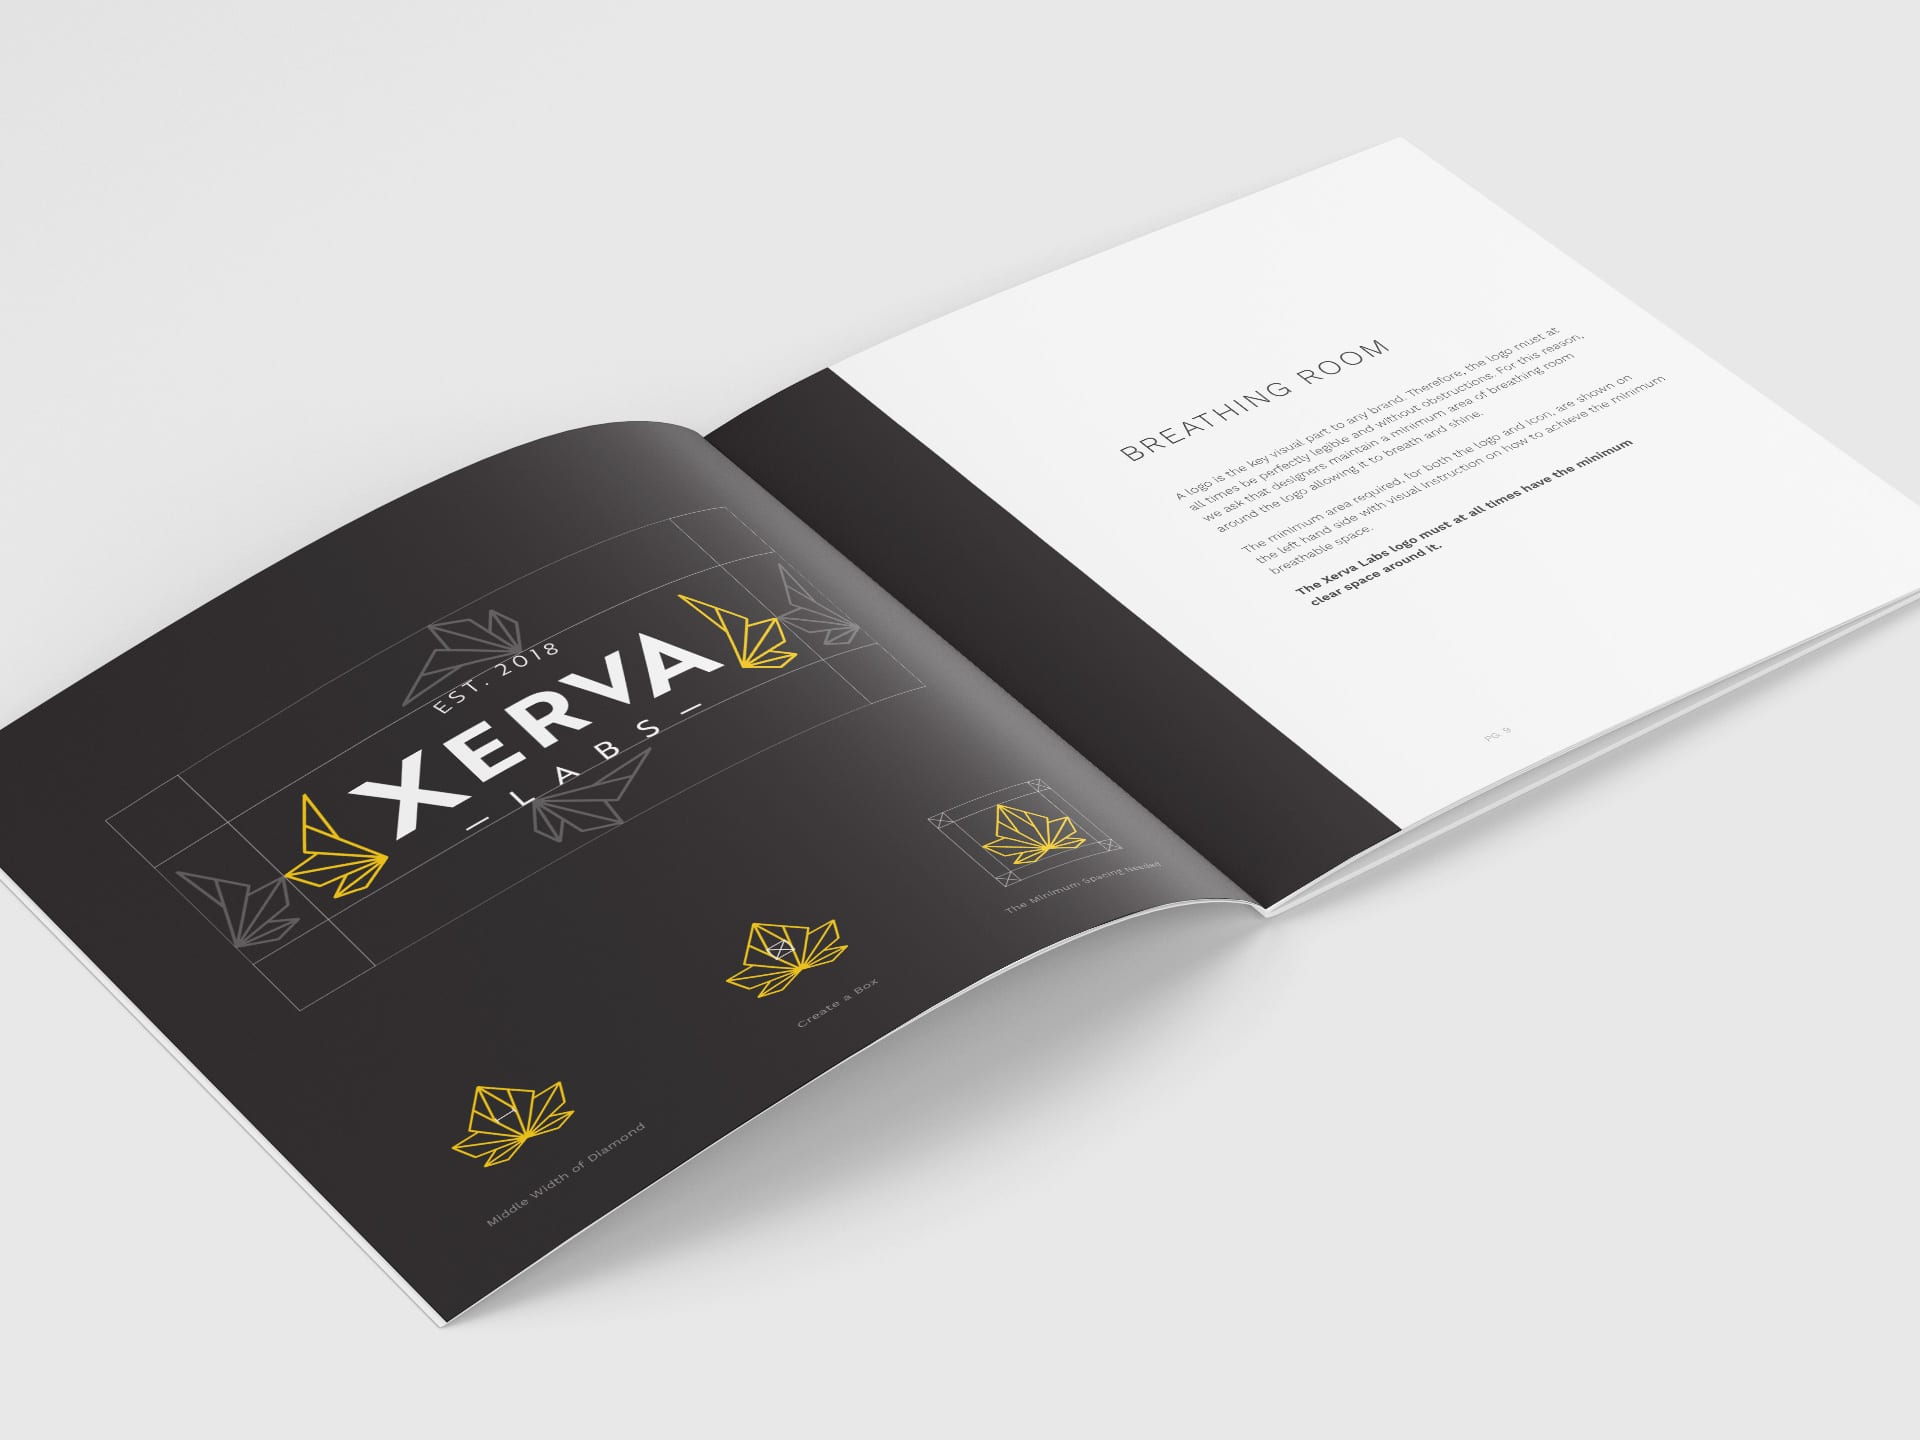 Y5 Creative Case Studies Emerging Markets Xerva Brand Booklet